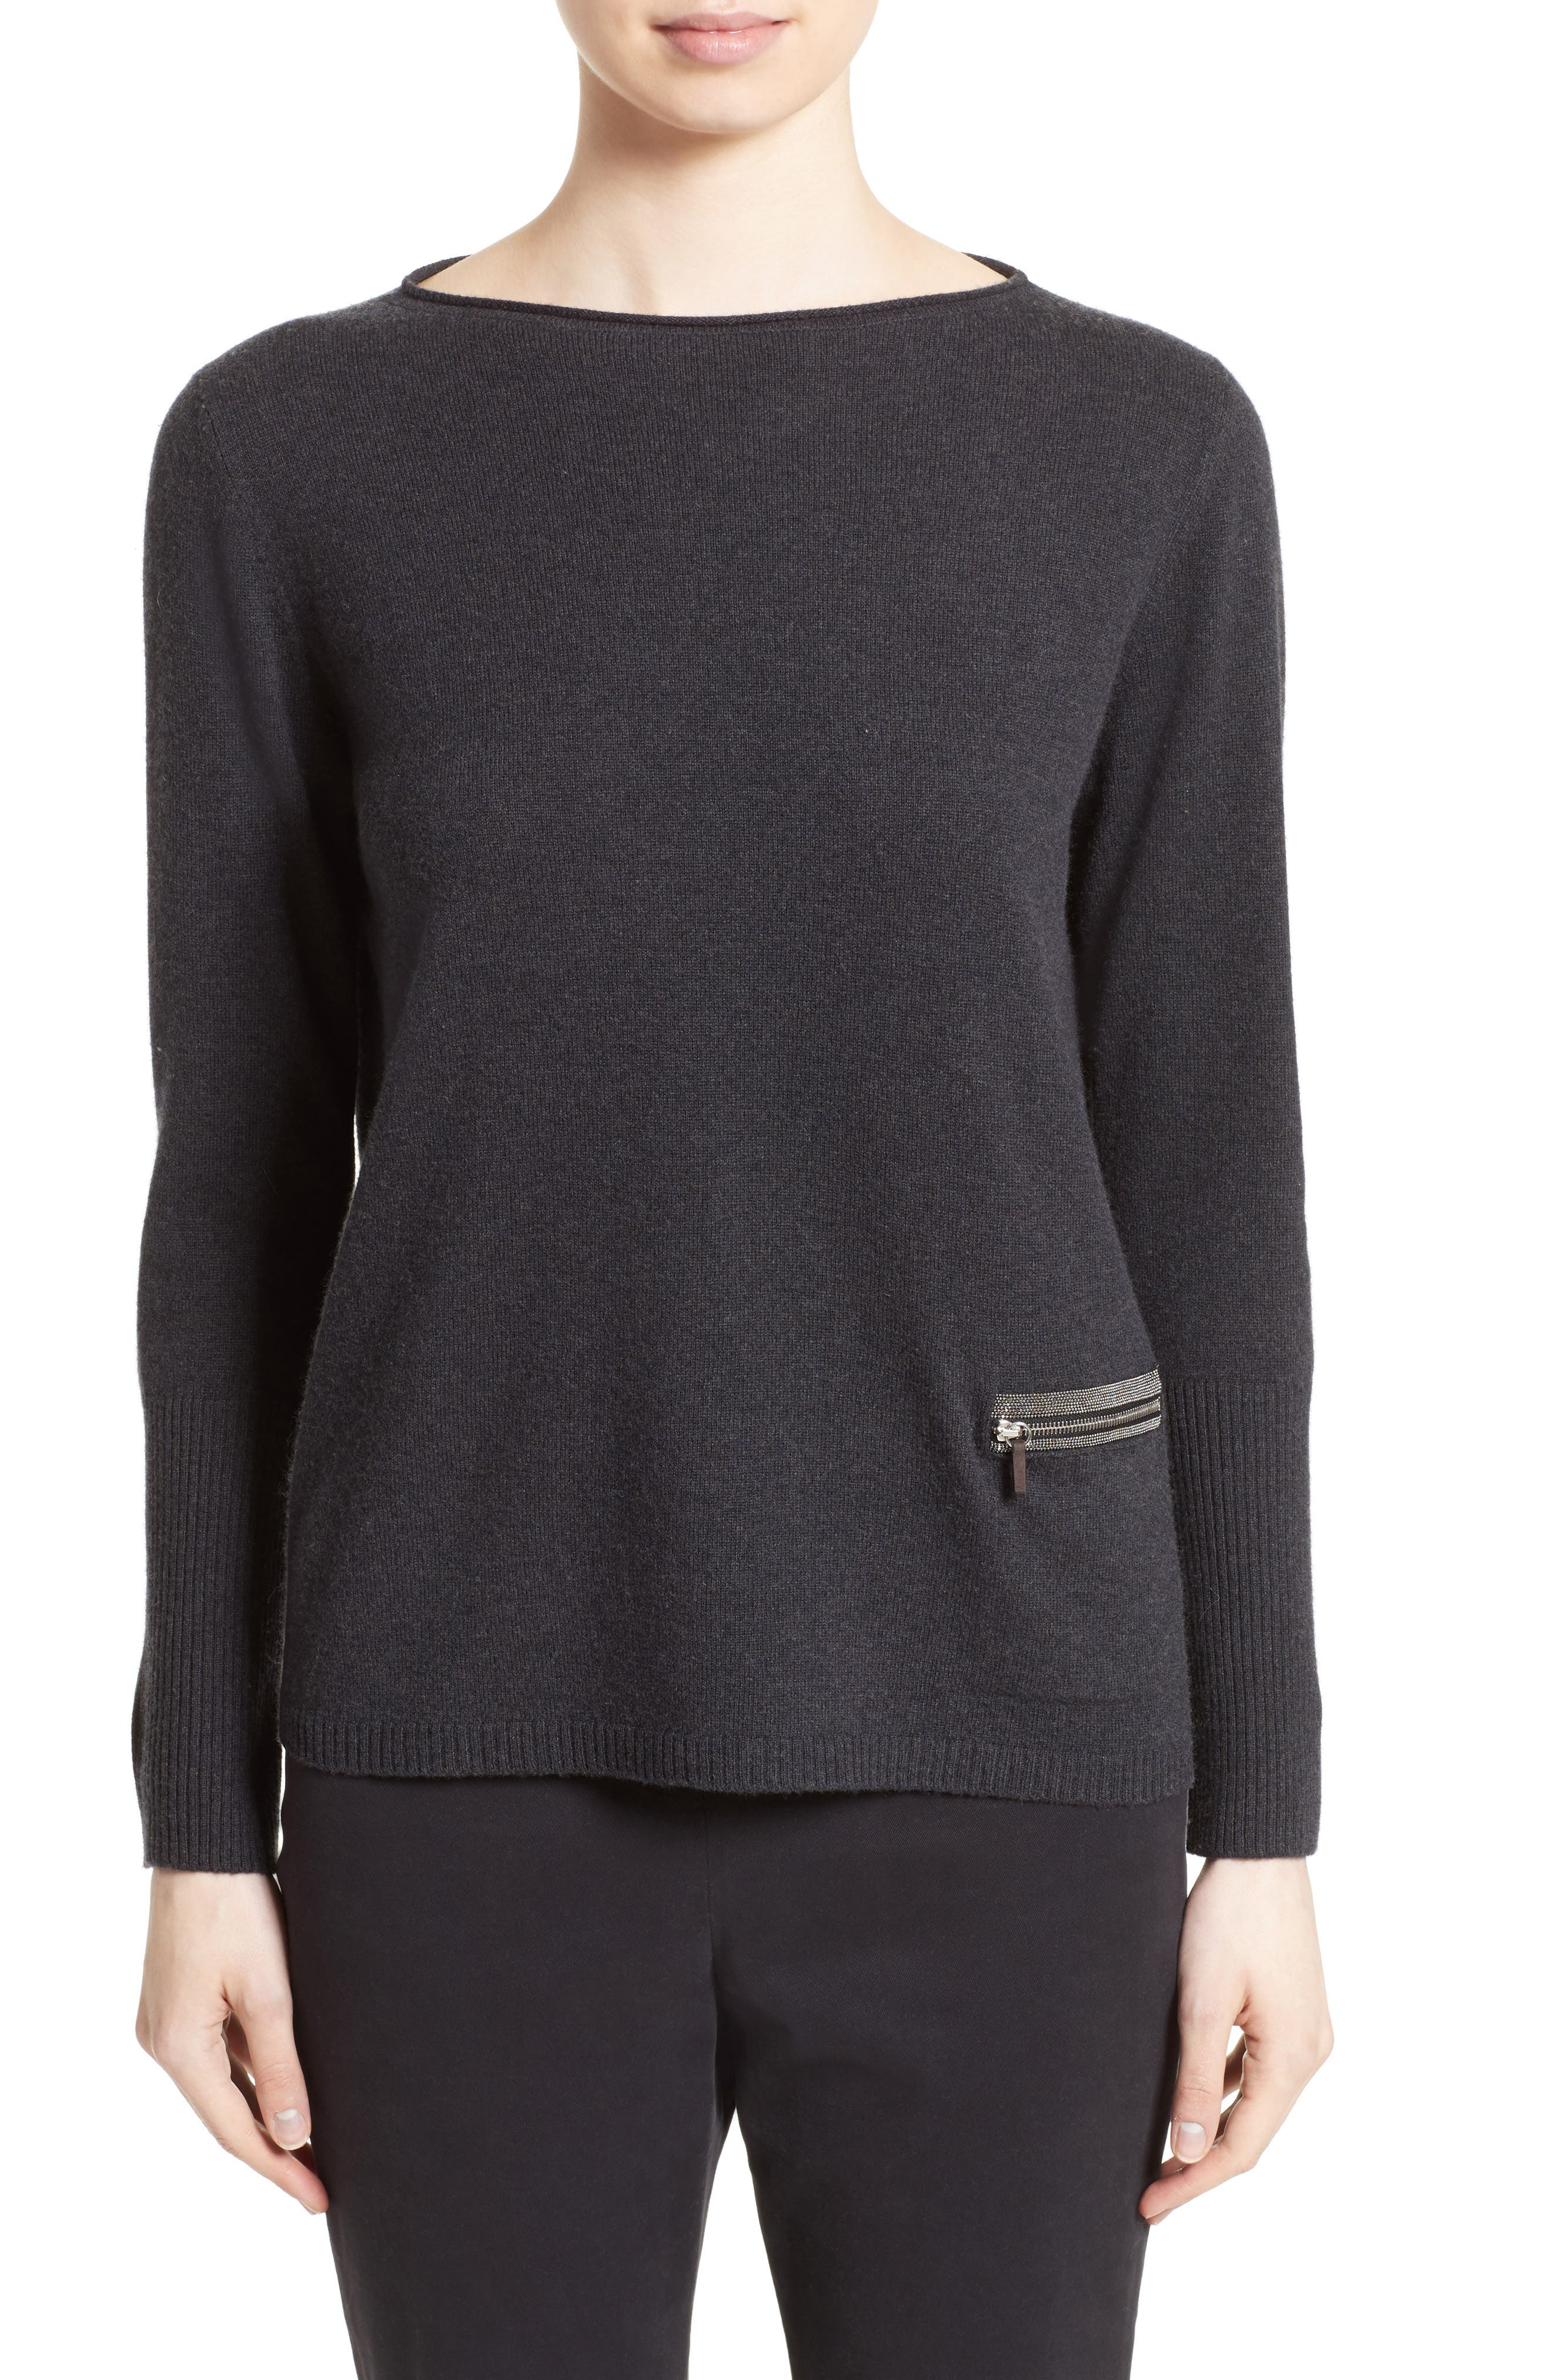 Wool, Silk & Cashmere Boatneck Sweater,                         Main,                         color, Charcoal Navy